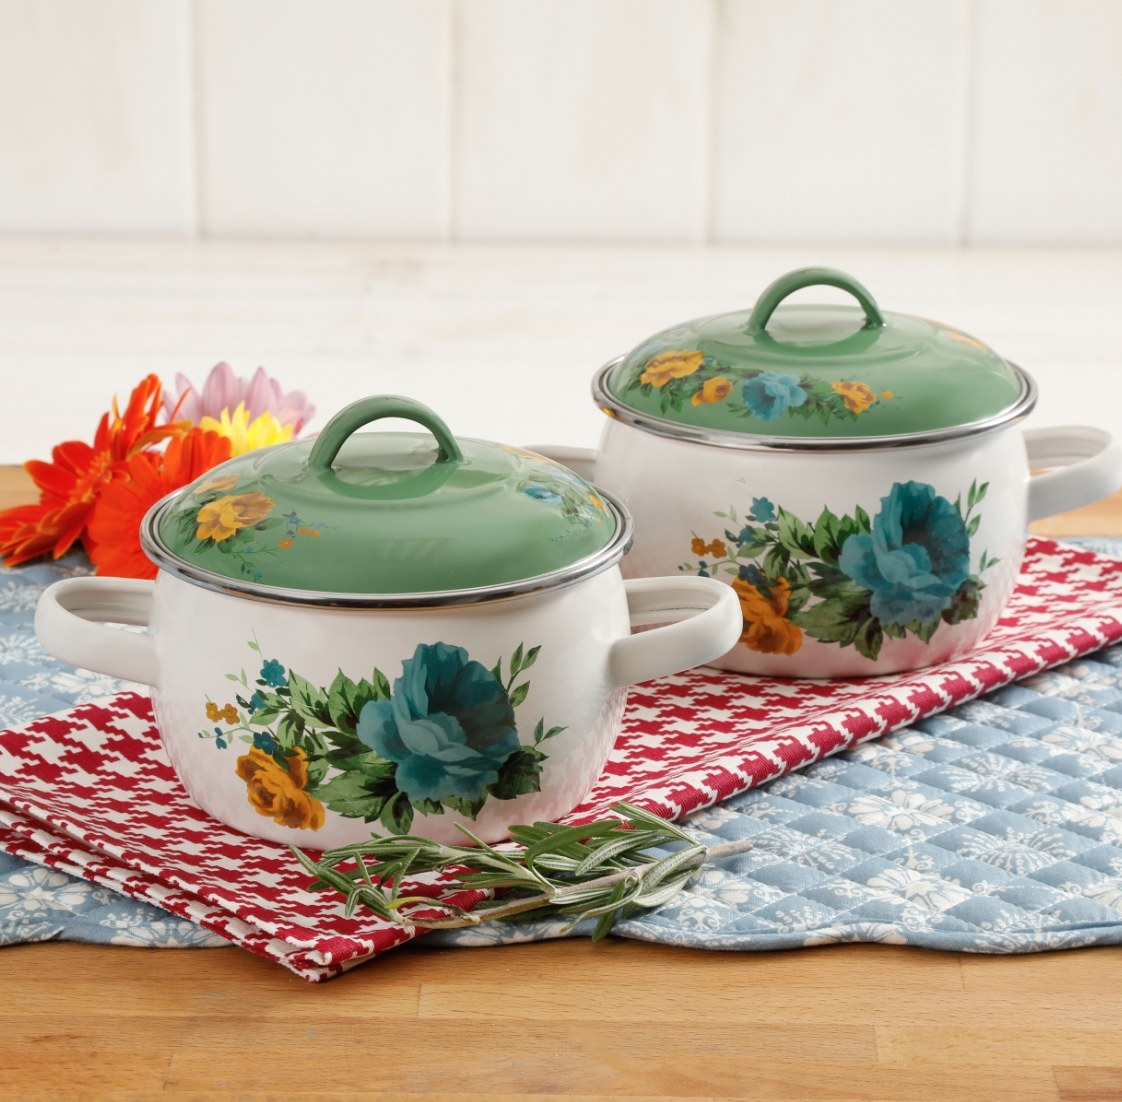 Two Pioneer Woman white and green mini Dutch ovens sitting on a red and white hound's tooth table cloth